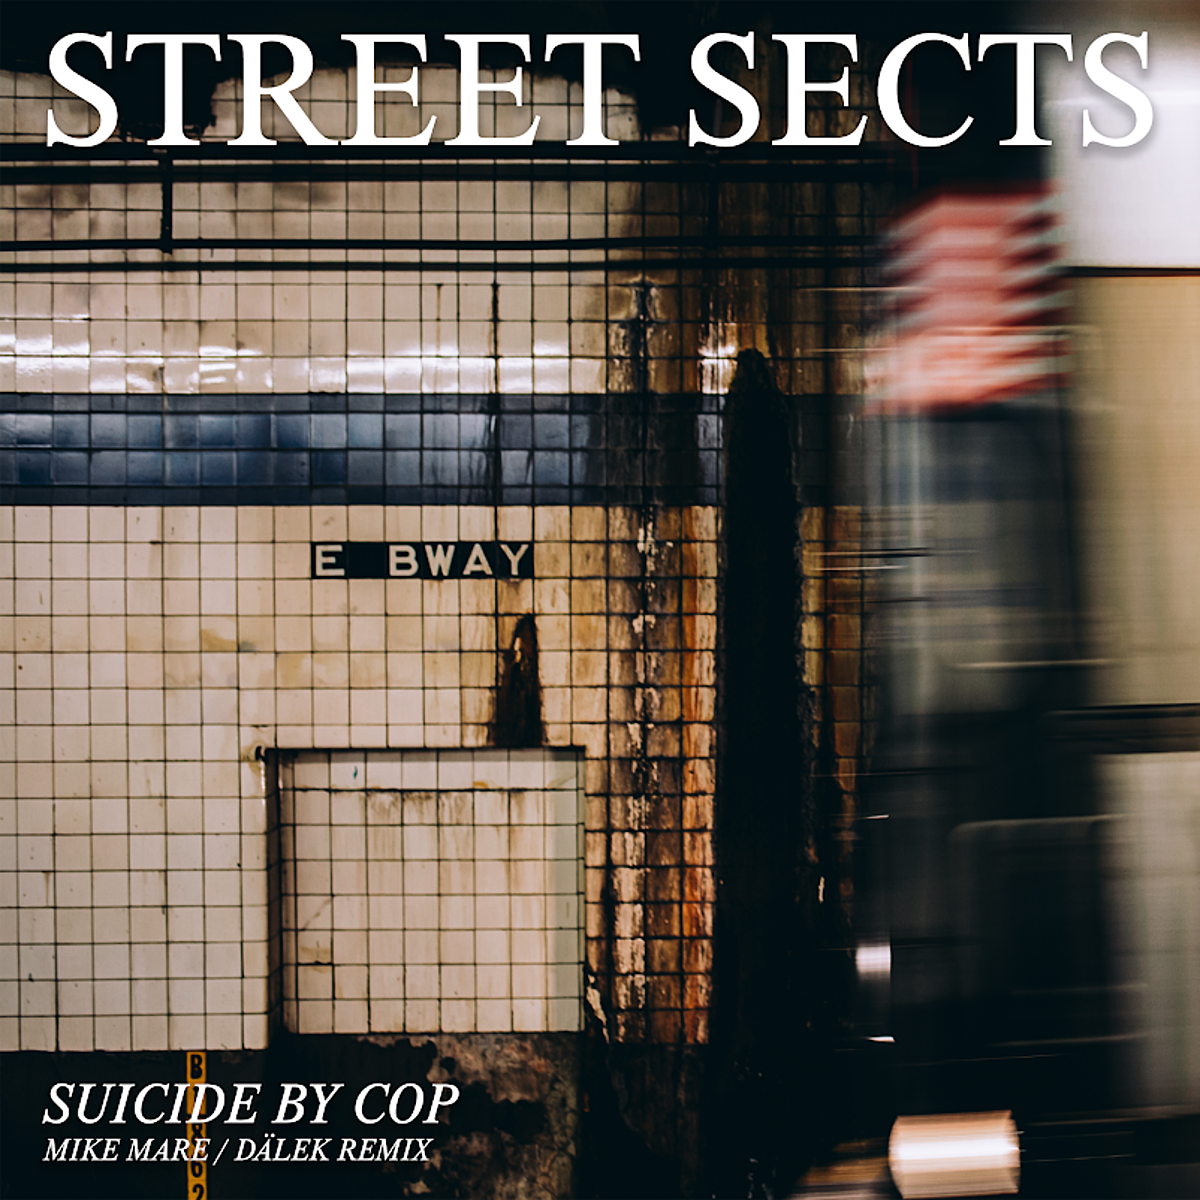 Street Sects remixed by Mike Mare of dälek (listen)